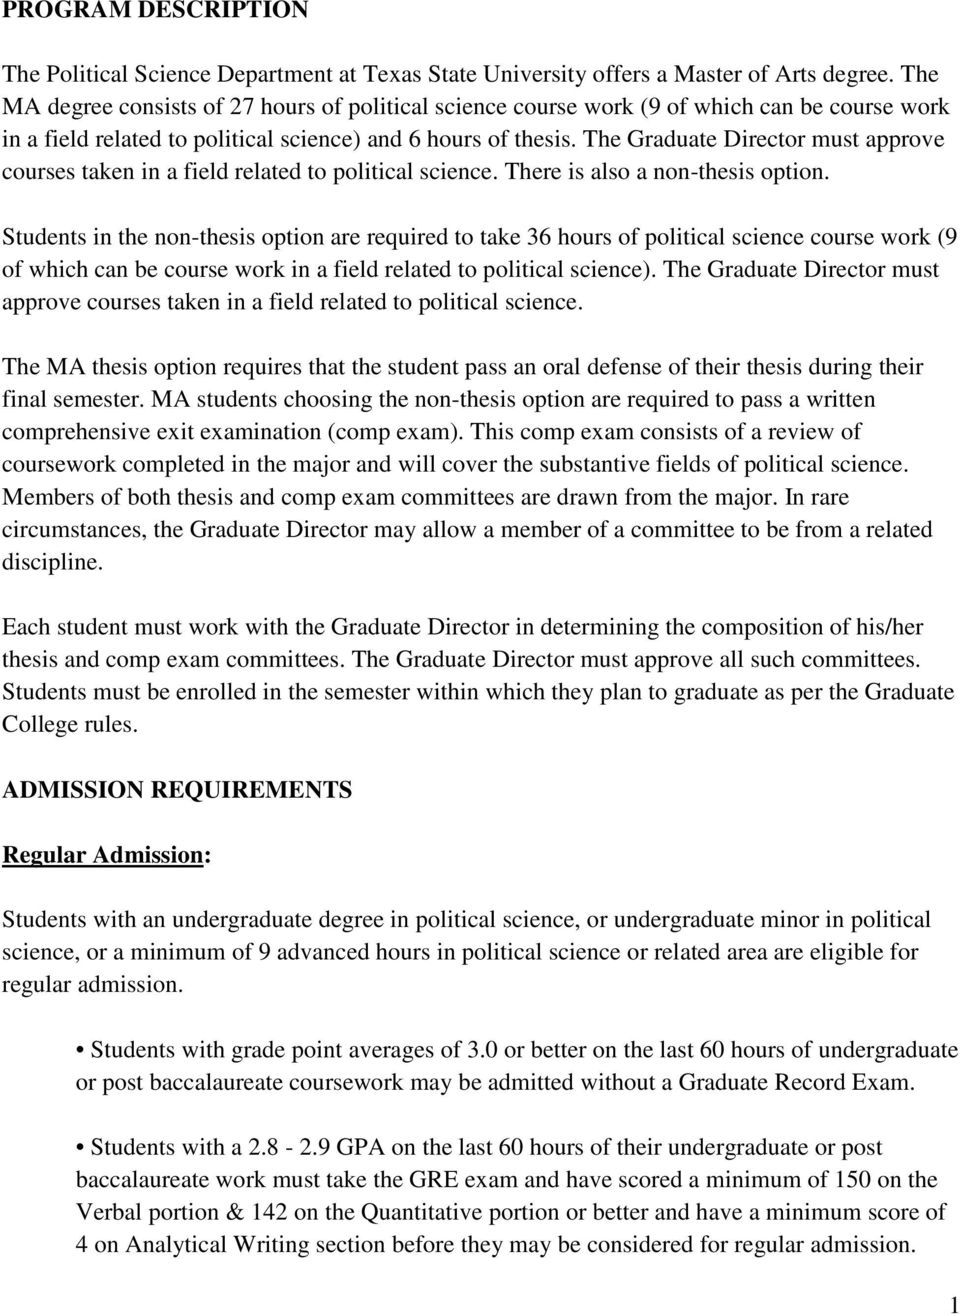 The Graduate Director must approve courses taken in a field related to political science. There is also a non-thesis option.